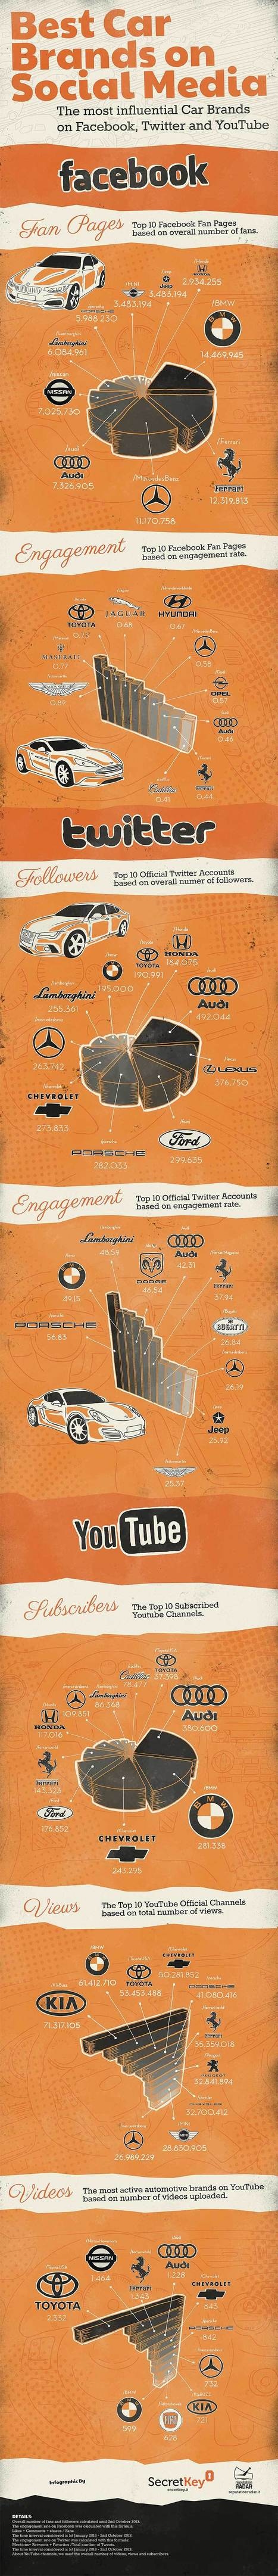 Best Car Brand on Social Media [Infographic] - Business 2 Community | Surviving Social Chaos | Scoop.it